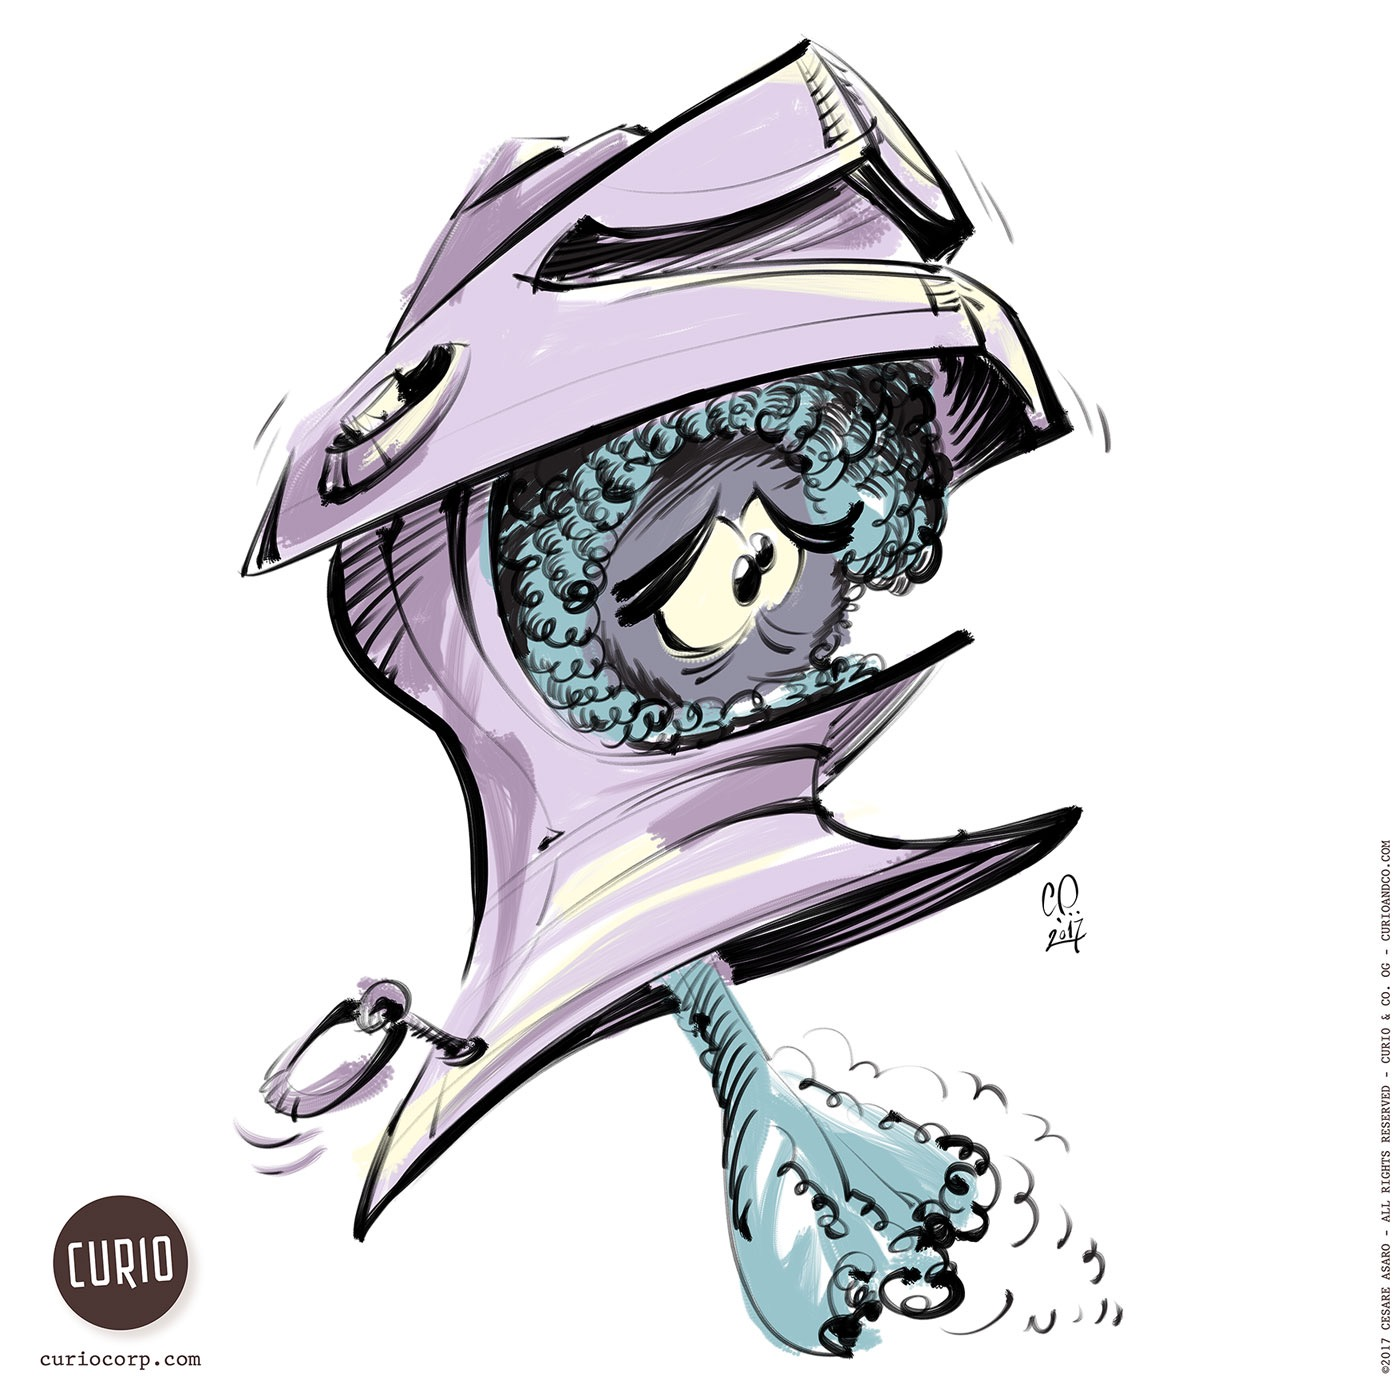 Ghost in armor helmet - illustration by Cesare Asaro of Curio & Co.